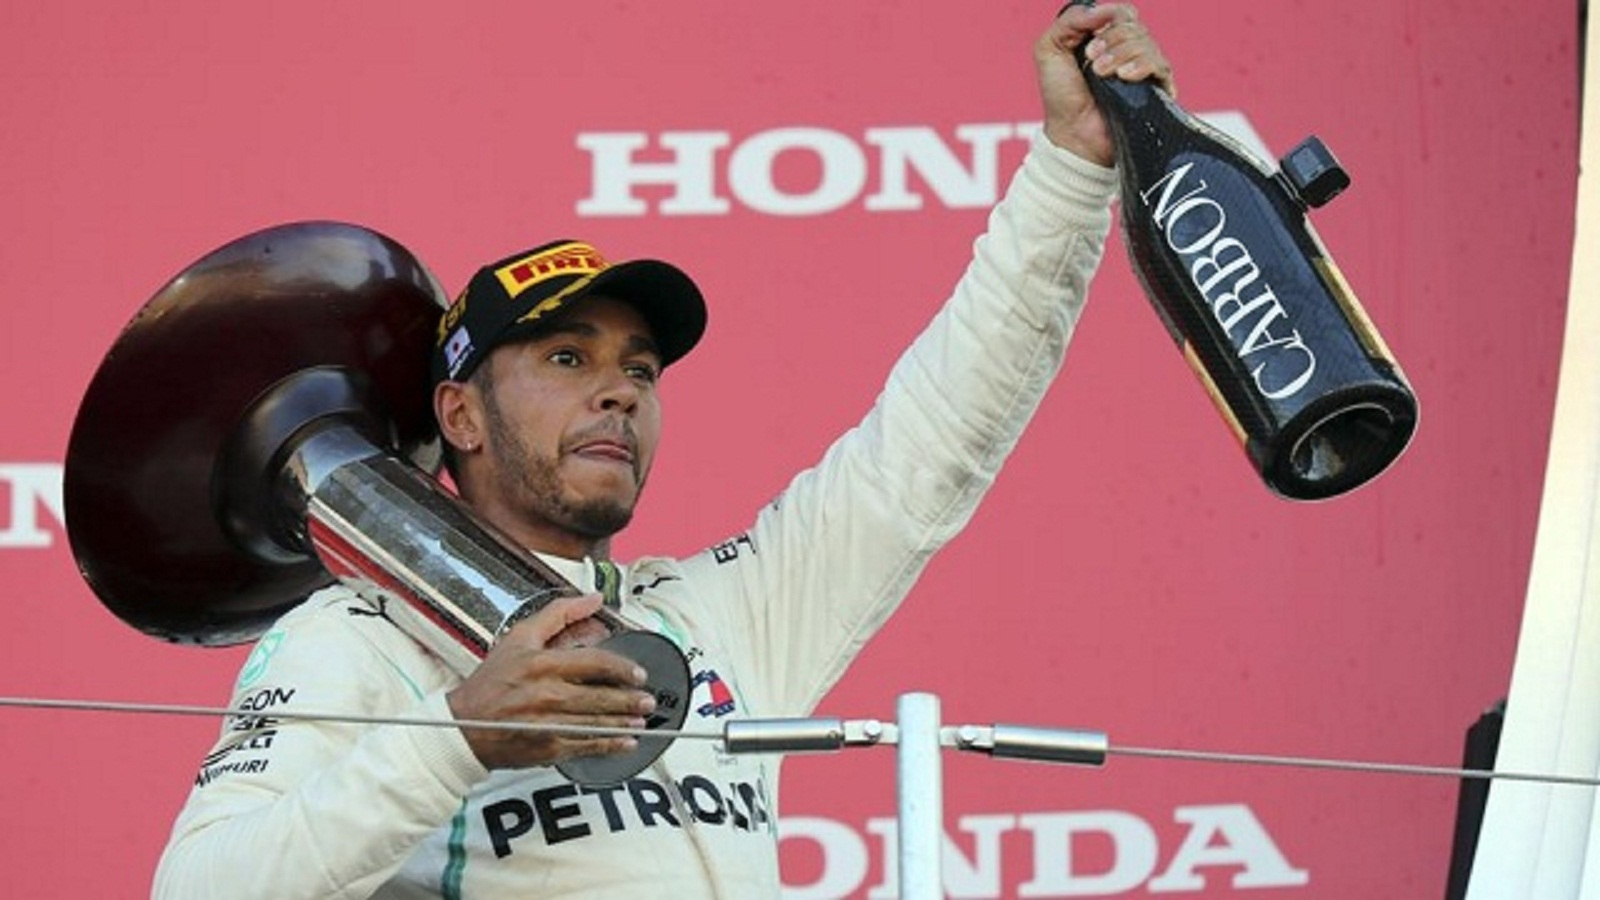 VIDEO: Hamilton imparable va por su quinto Mundial